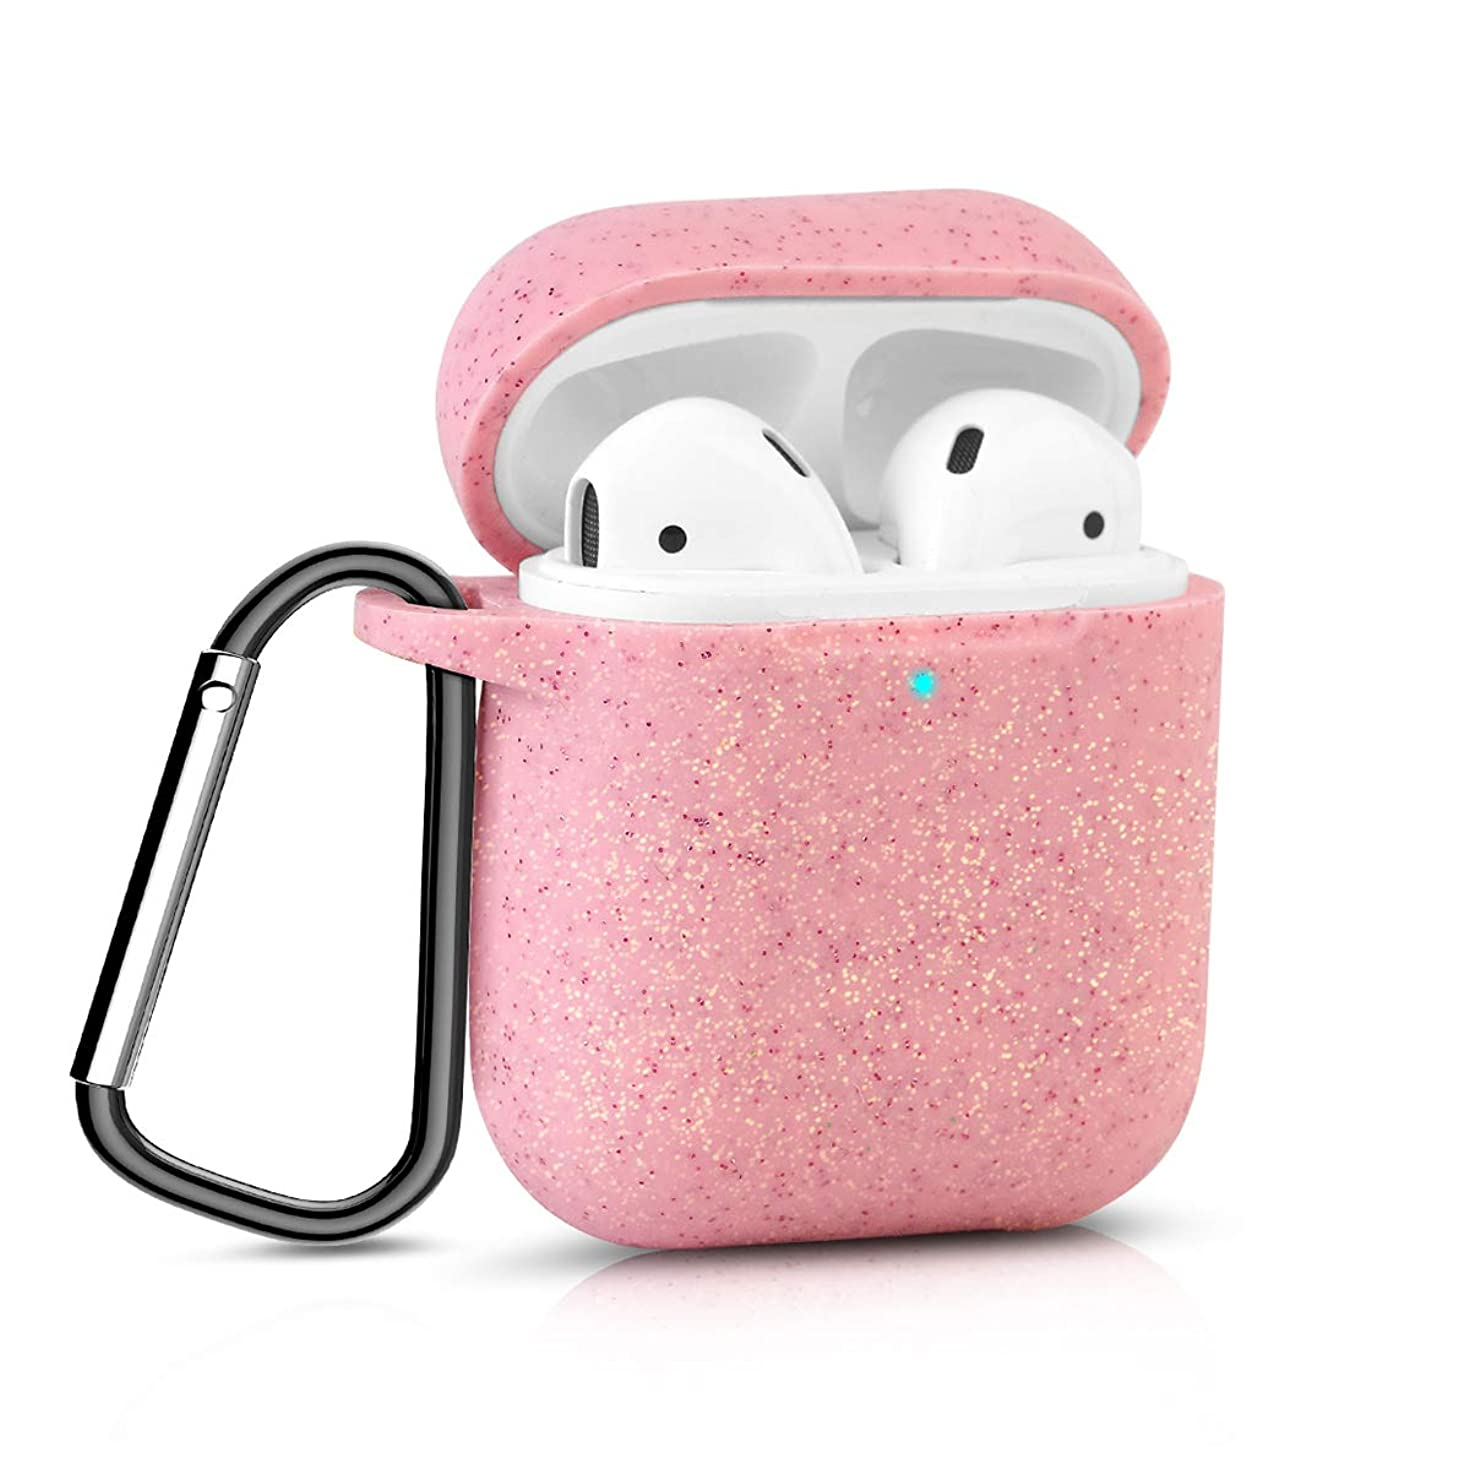 Bqmte Silicone Case Compatible for AirPods 2, [Front LED Visible] Glittery Wireless Charging Case Cover with Carabiner for Apple AirPods 2 (2019) (Peach Pink)